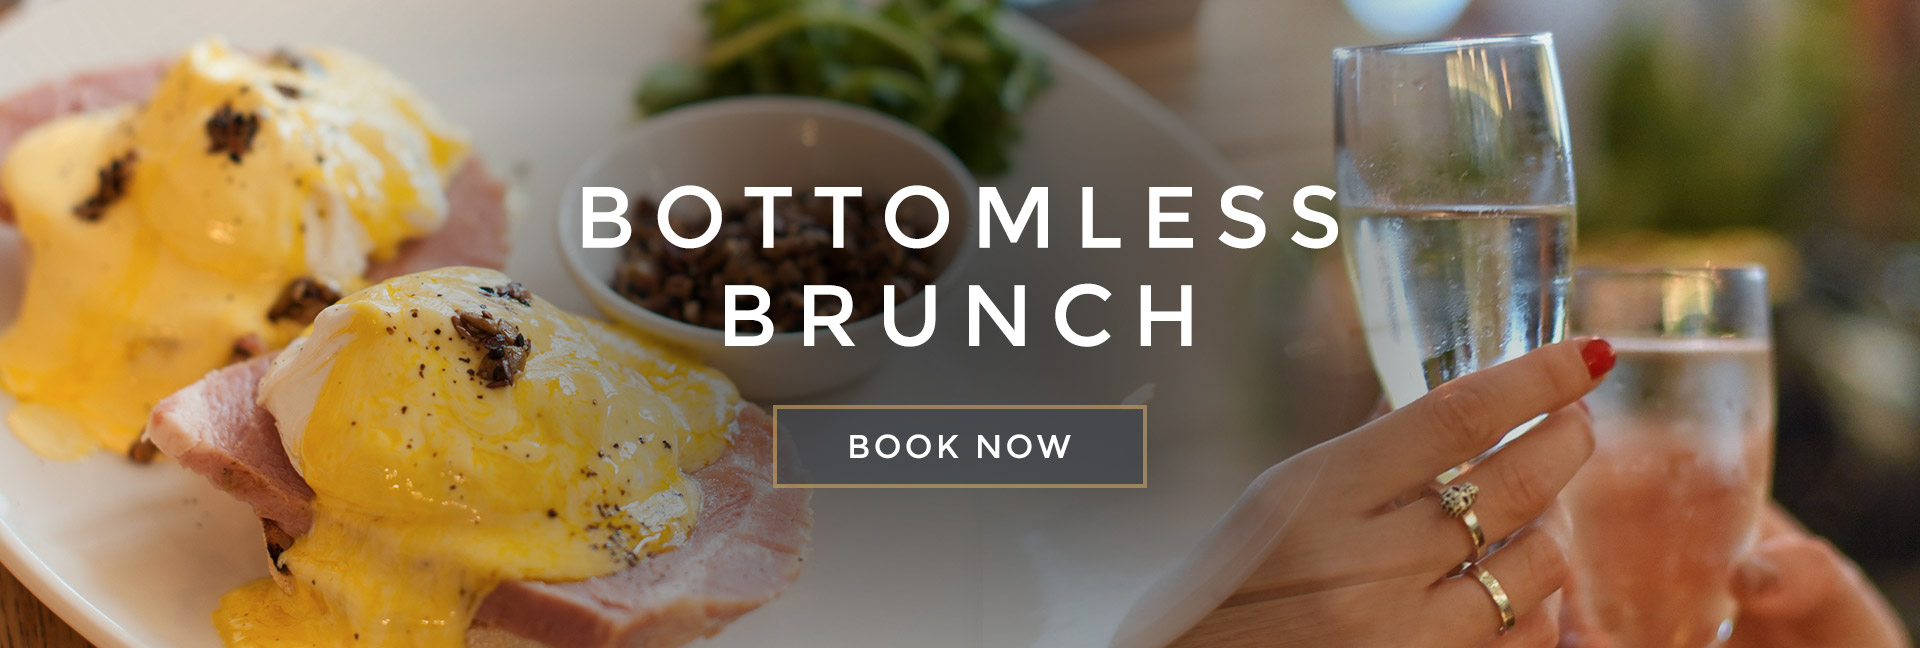 Bottomless Brunch at All Bar One Windsor - Book now